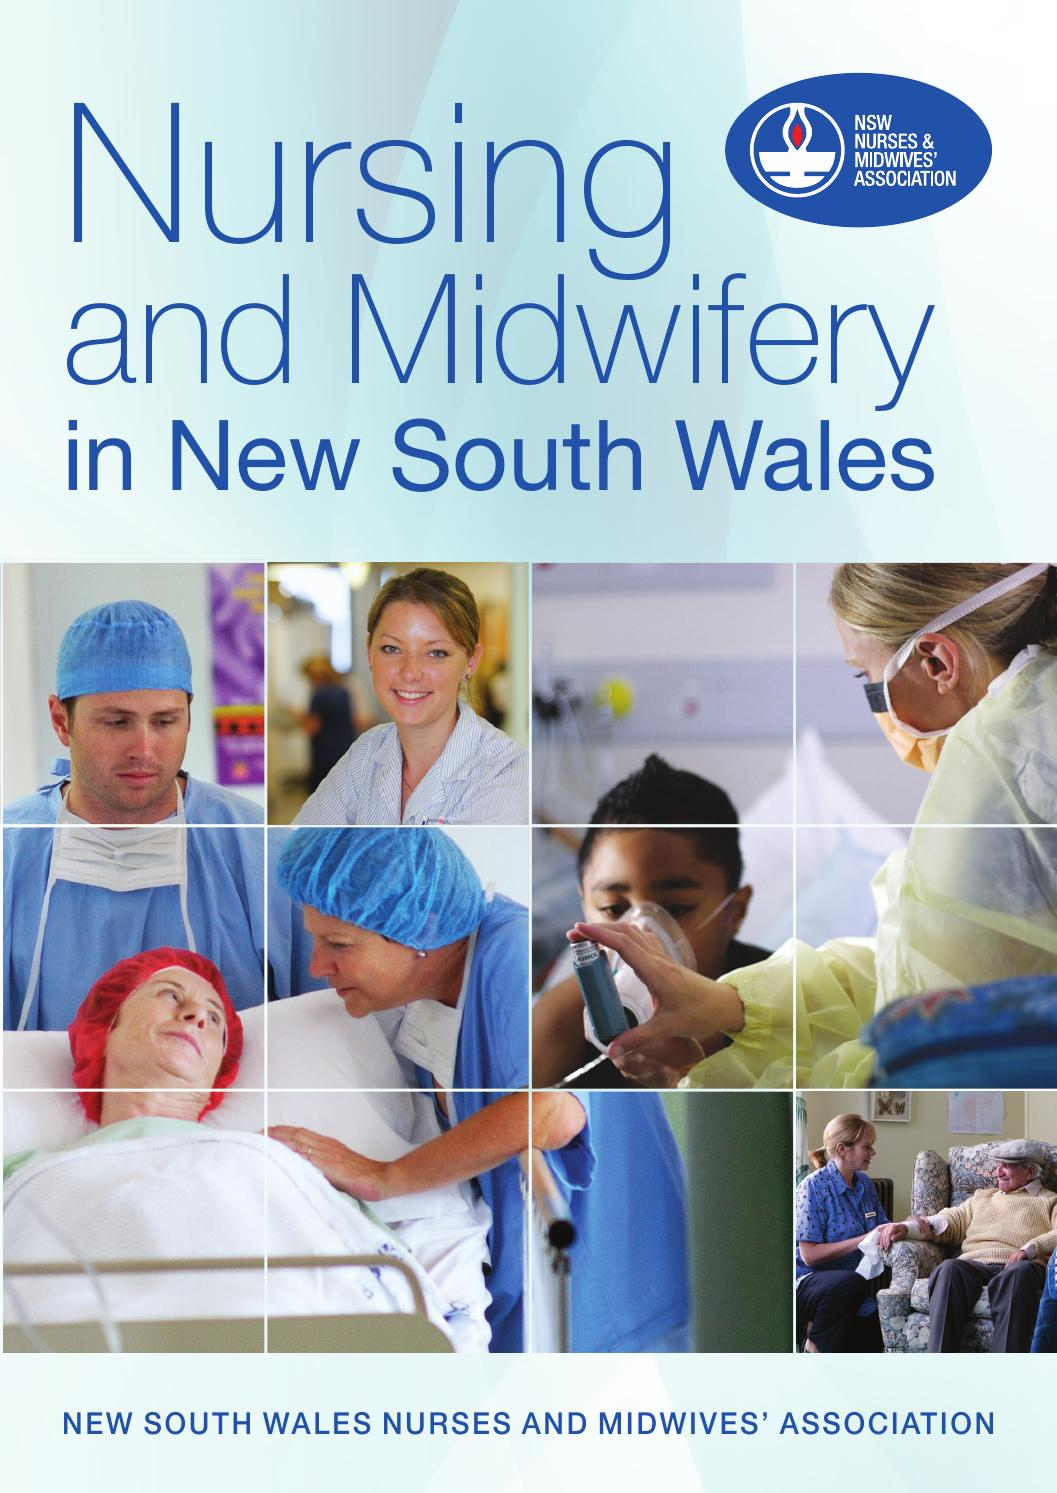 the normal midwifery practice nursing essay Nursing and midwifery council essay nursing and midwifery council (nmc) the nursing and midwifery council is the regulator for nurses and midwives in england, wales, scotland, northern island and the islands.